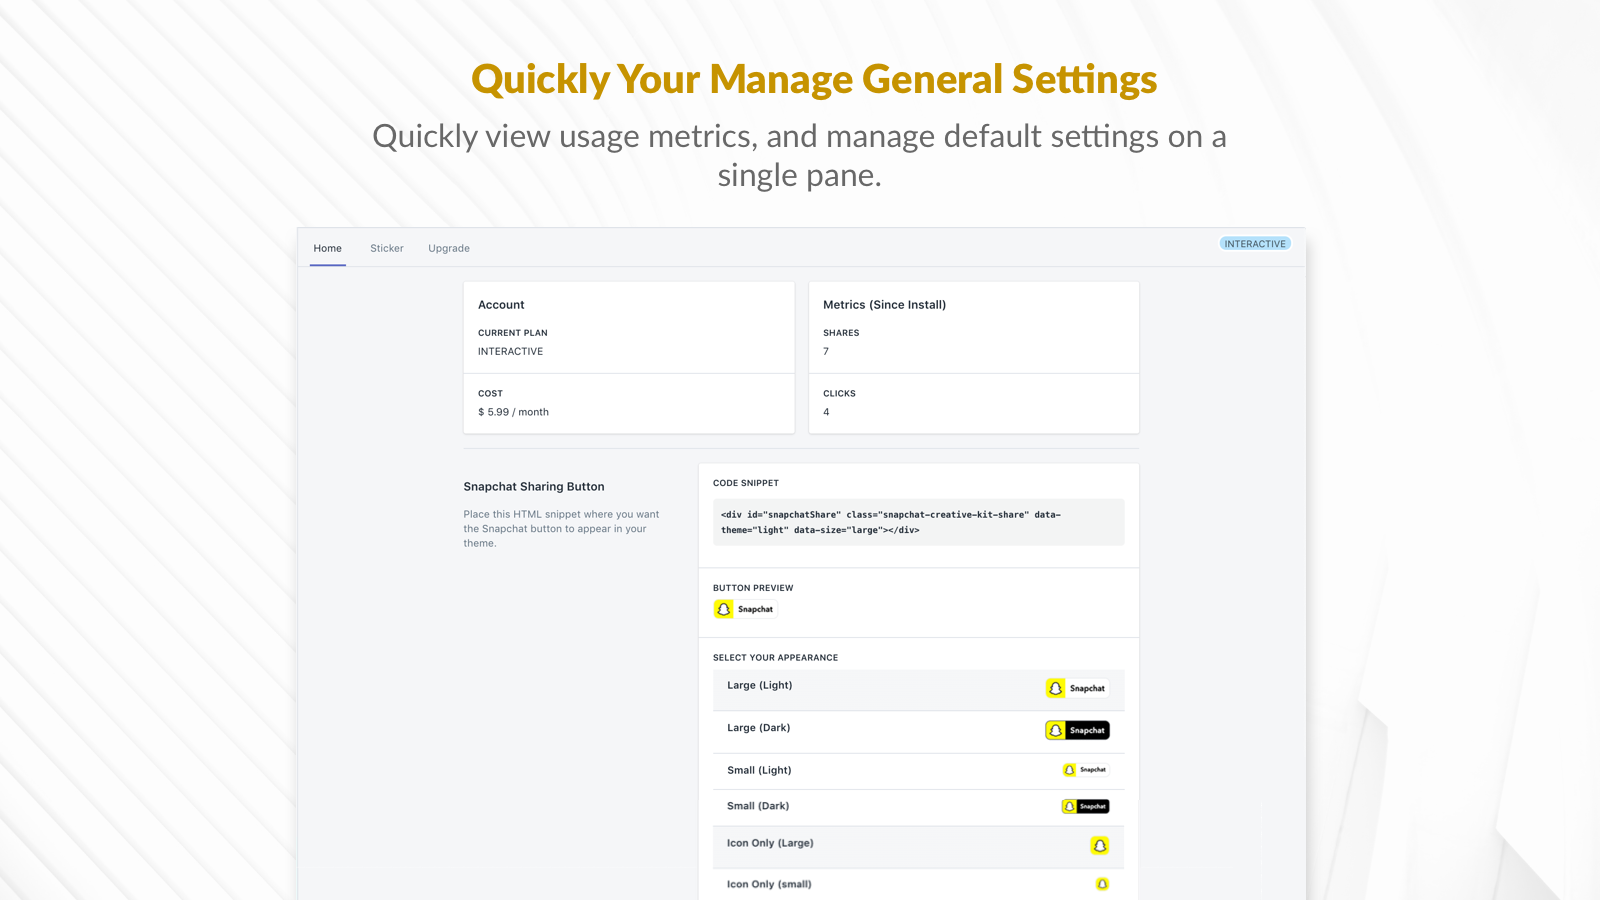 Manage all your default settings on a single pane